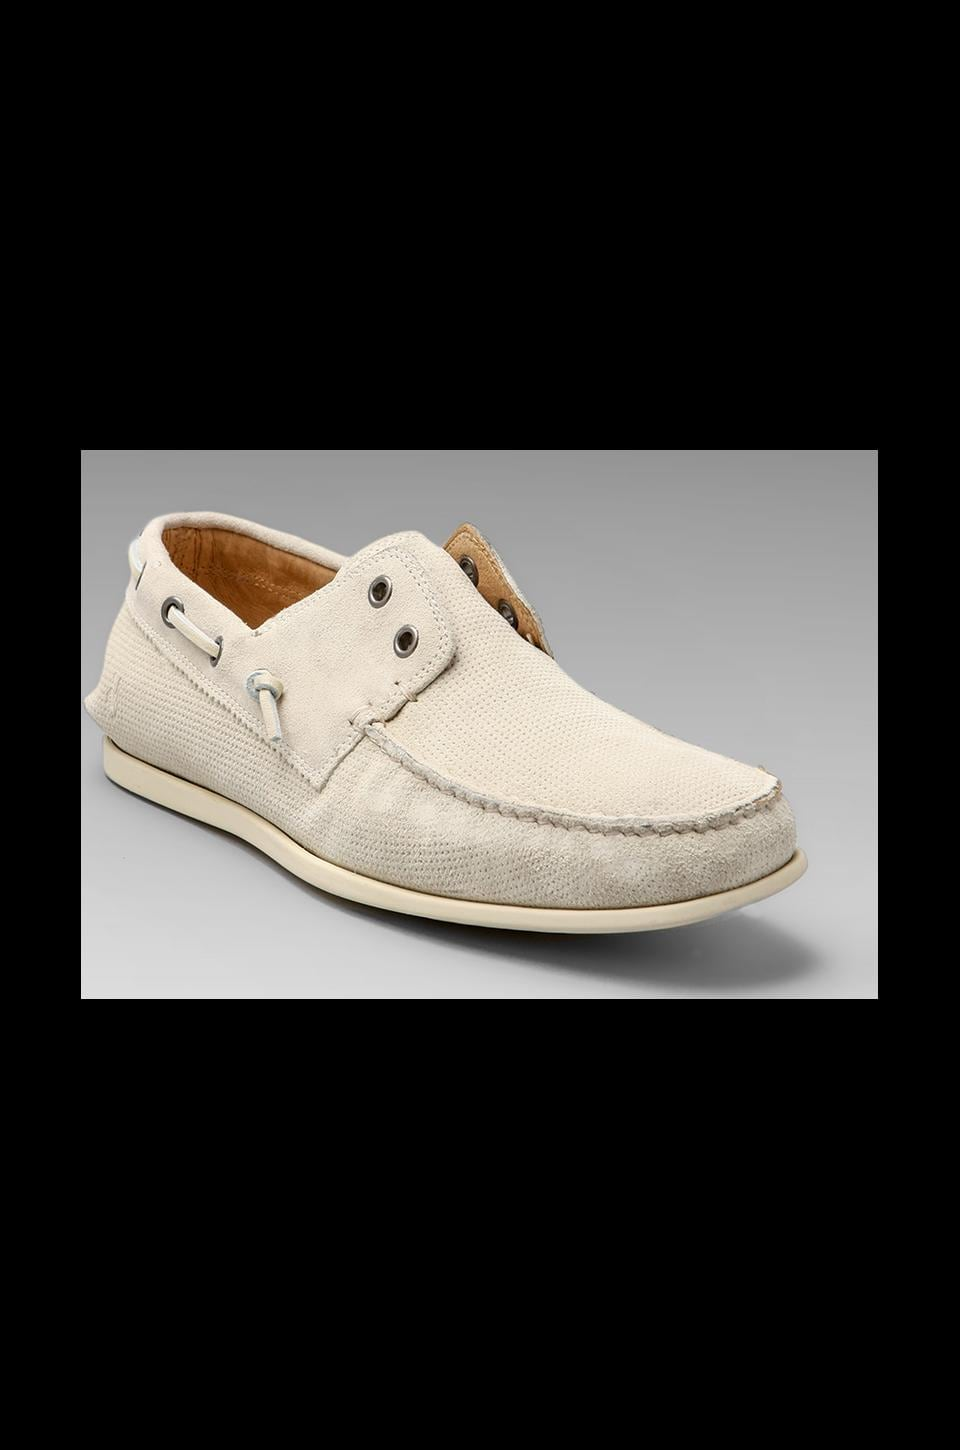 John Varvatos Star USA Schooner Boat Shoe in Birch